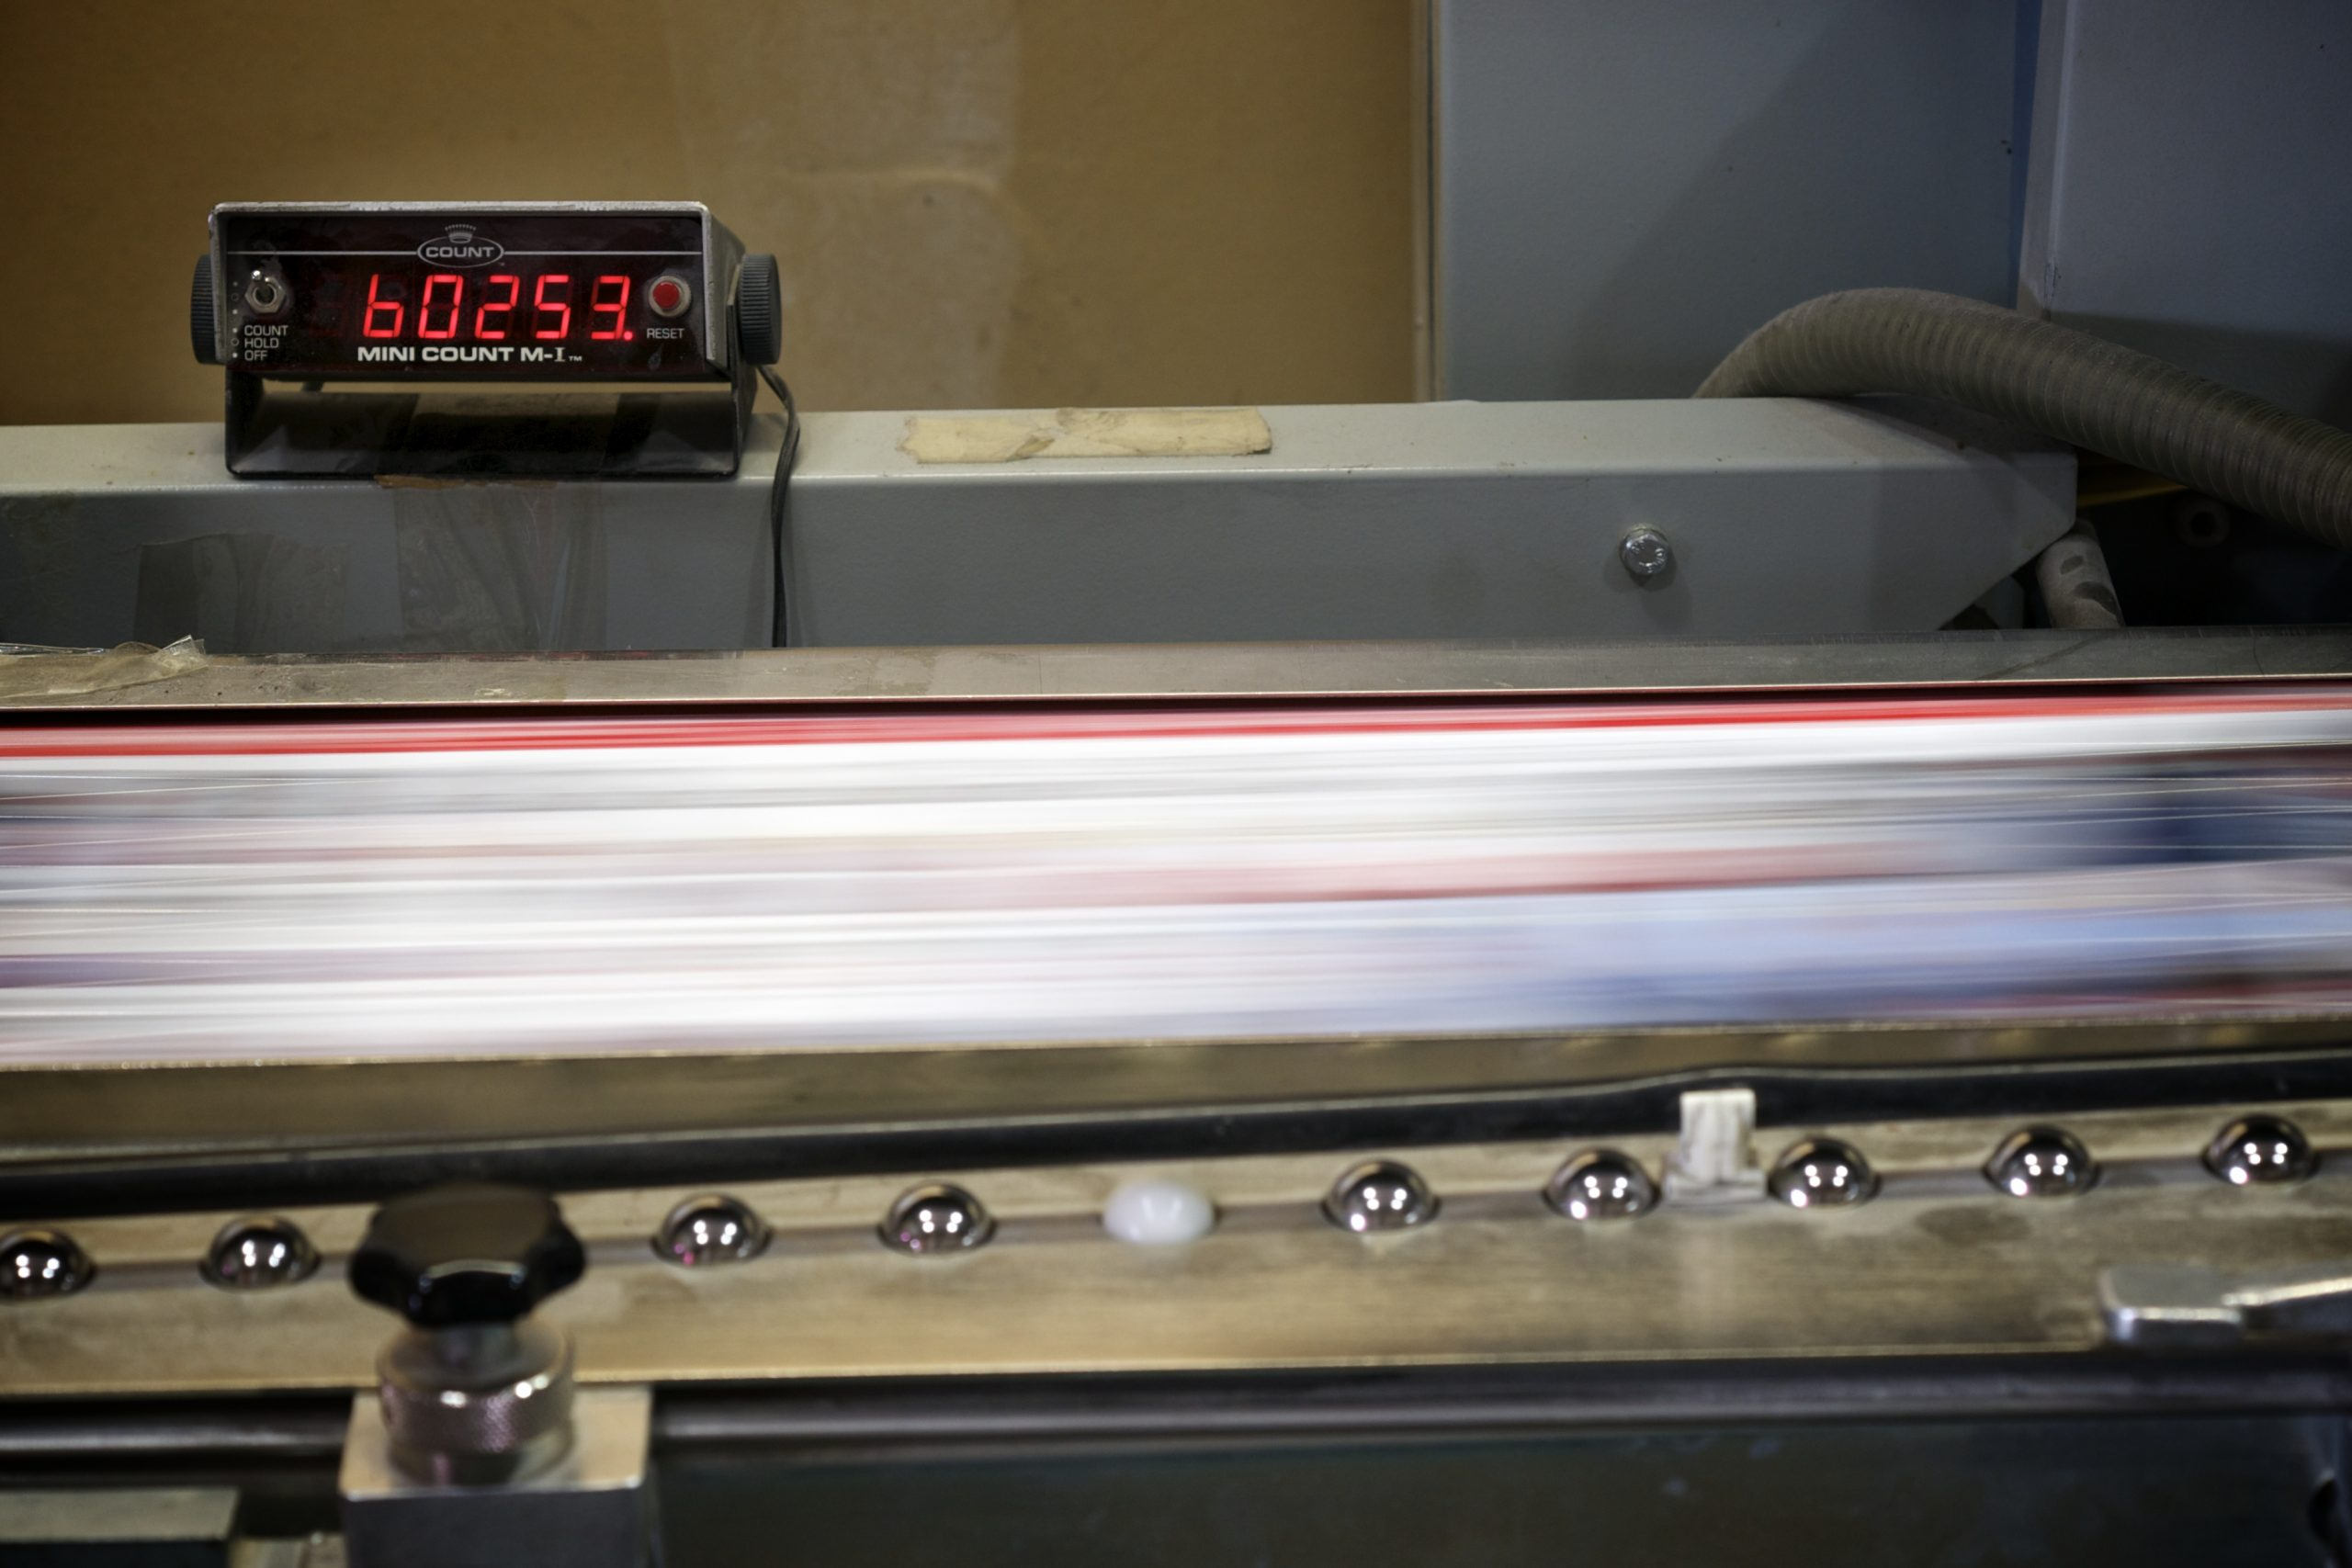 Calagaz Commercial Printing in Mobile, Ala., Tuesday, July 26, 2011.